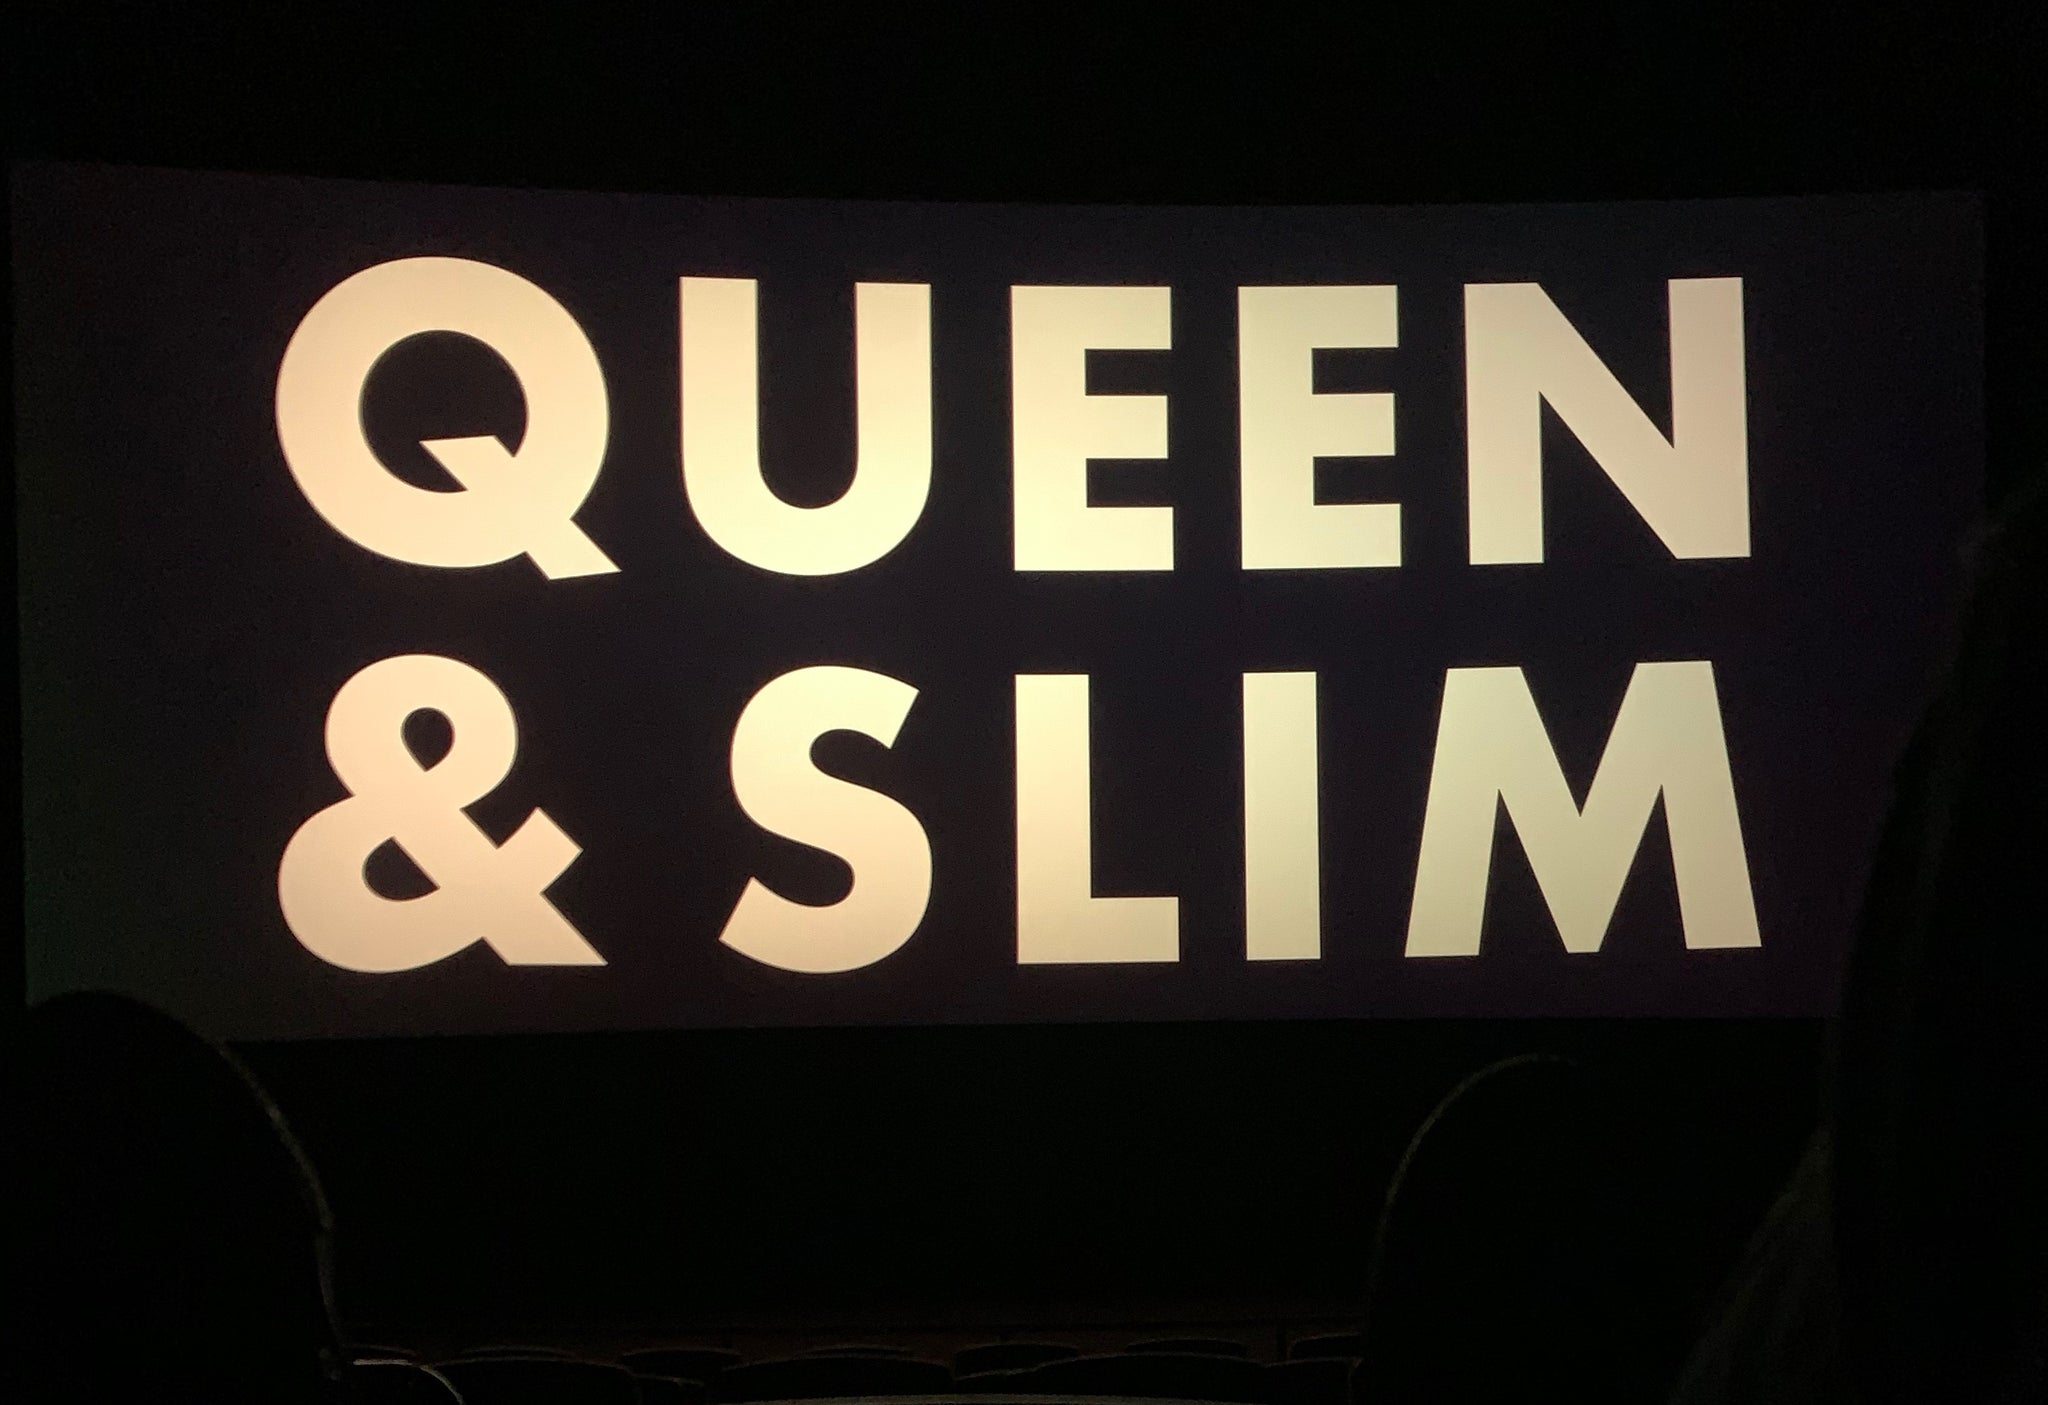 Queen & Slim - Response to Movie [REVIEW]